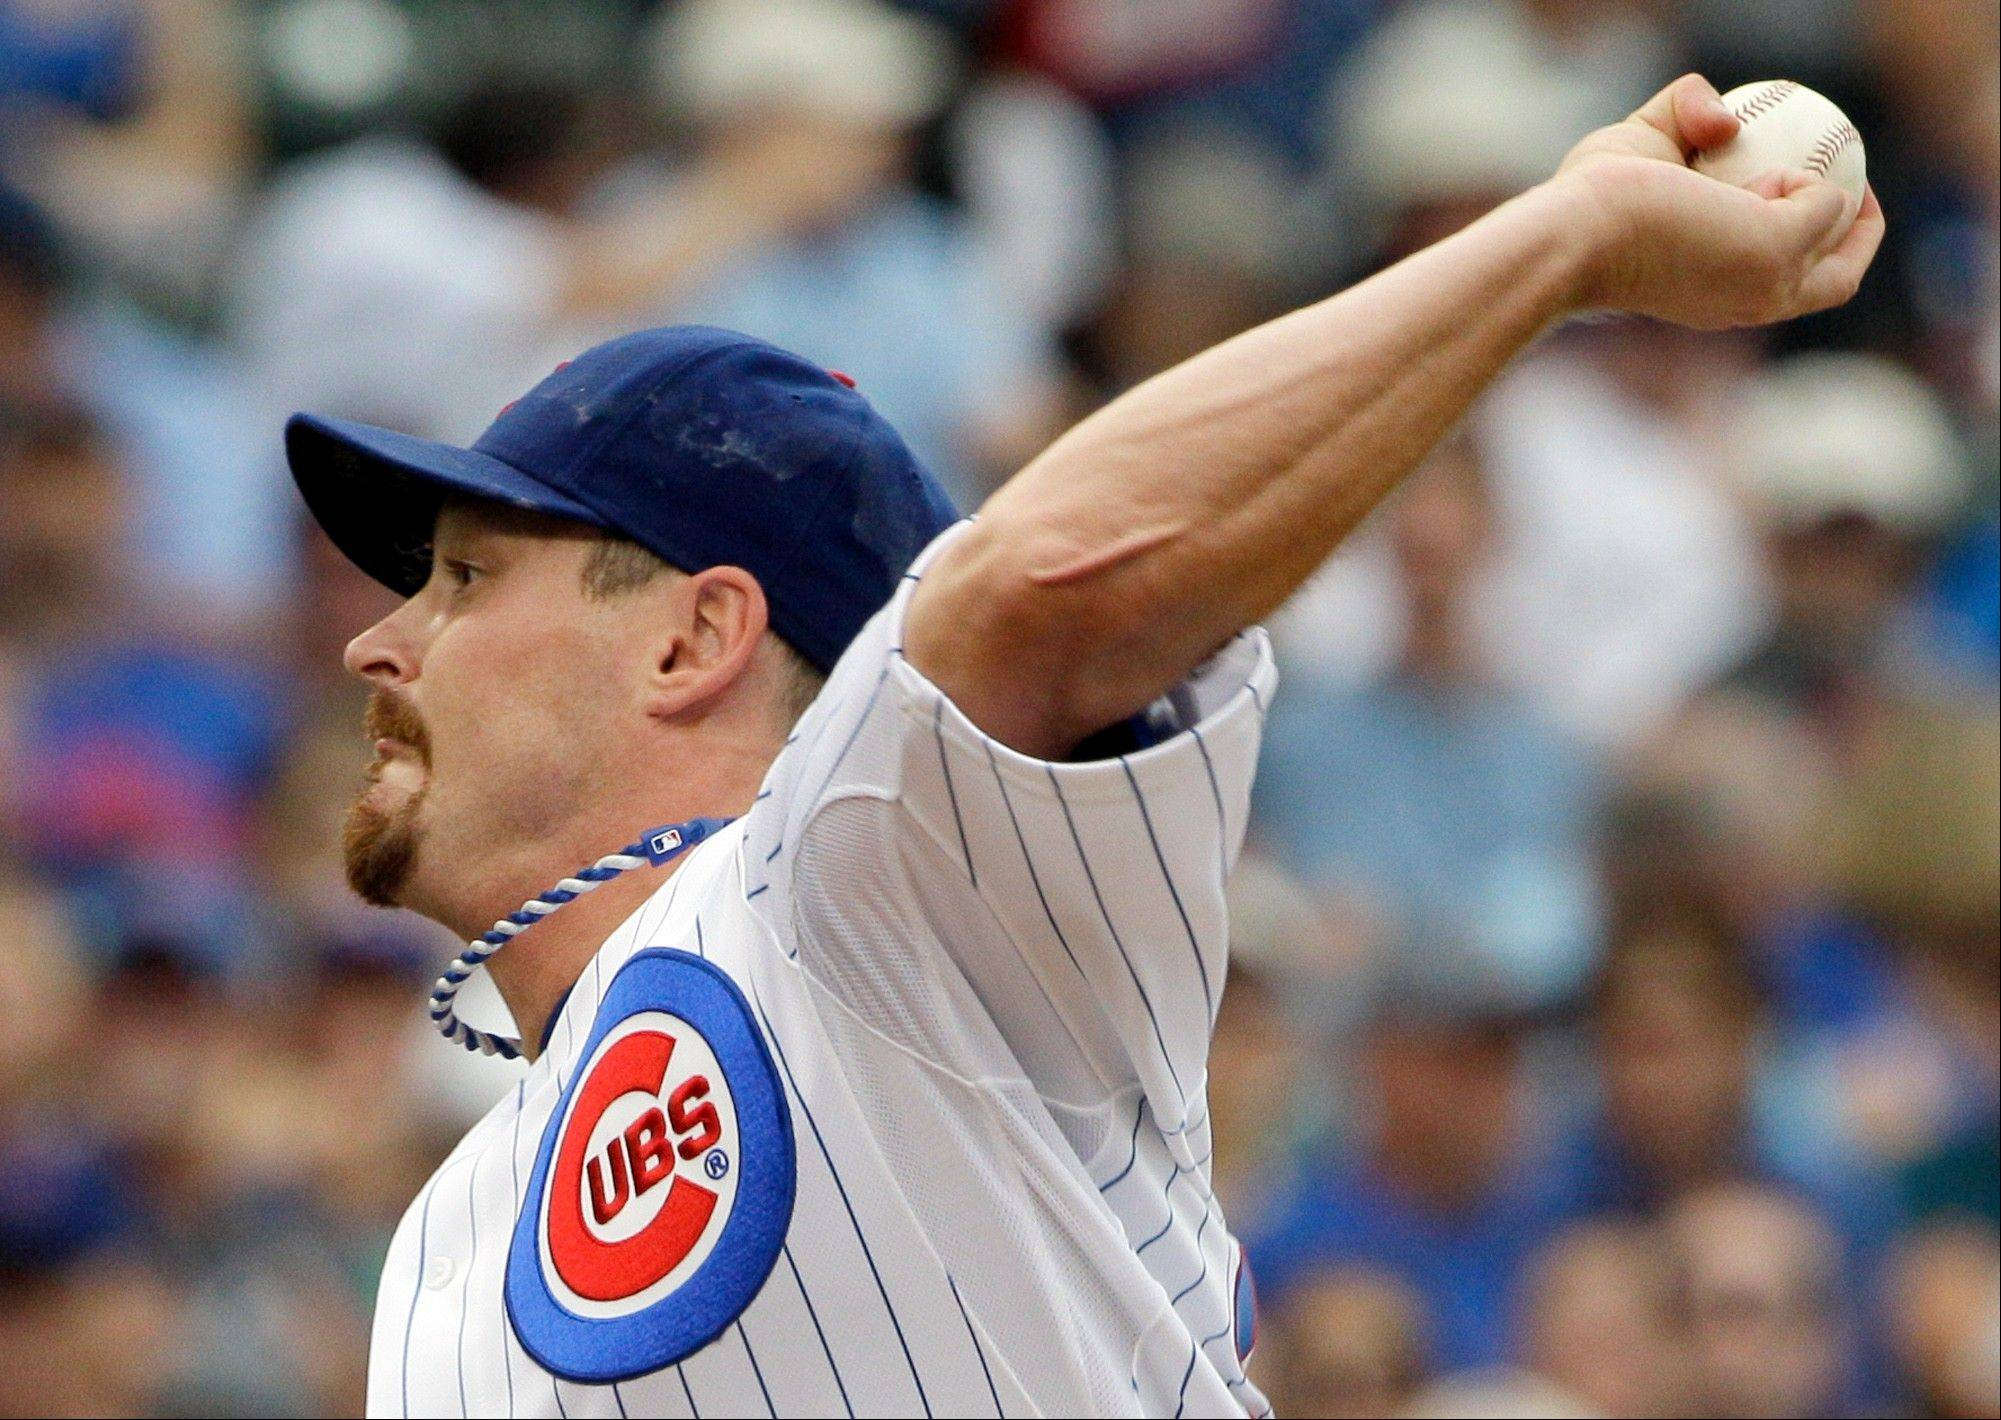 No win, but Cubs' Travis Wood making strides